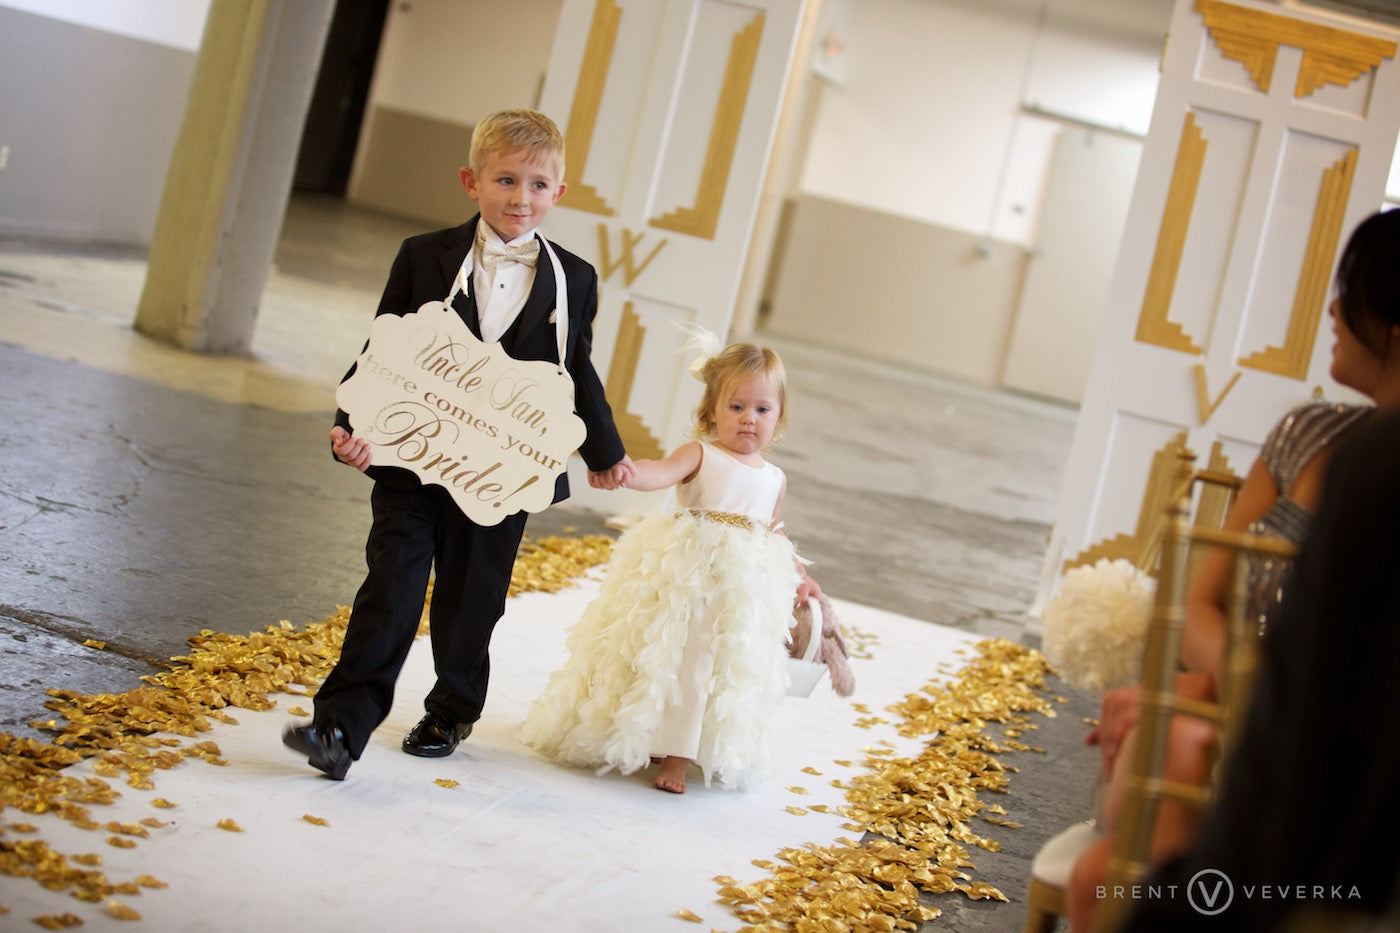 Ring Bearer and Flower Girl | Glam Speakeasy Wedding | Brent Veverka Media